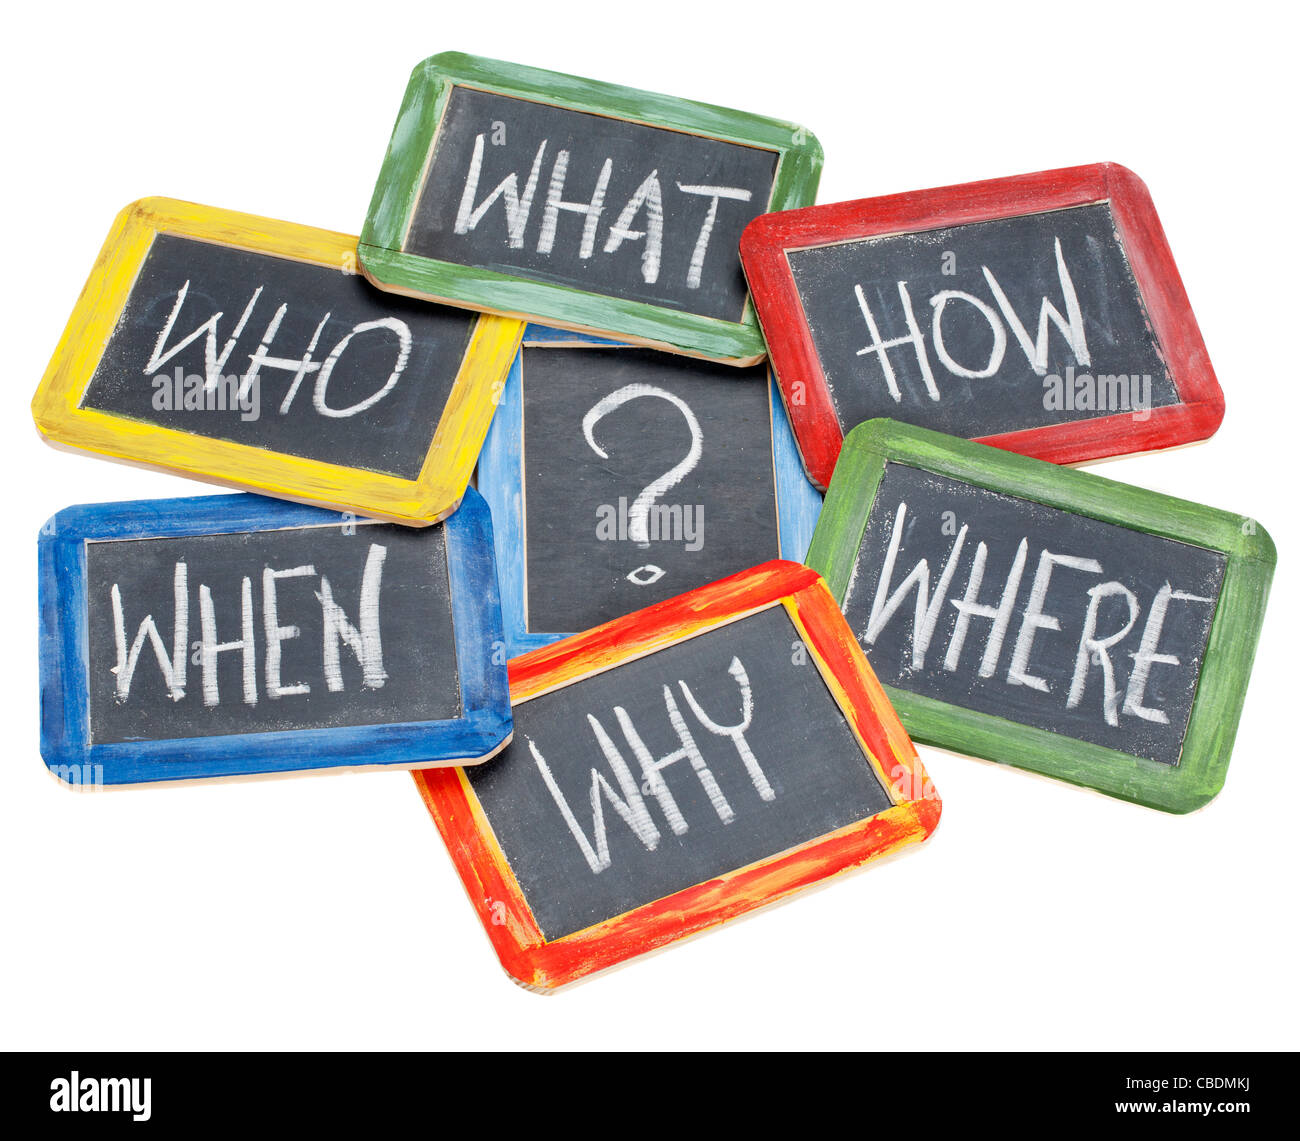 what, when, where, why, how, who questions - white chalk handwriting on vintage slate blackboards in colorful wood - Stock Image